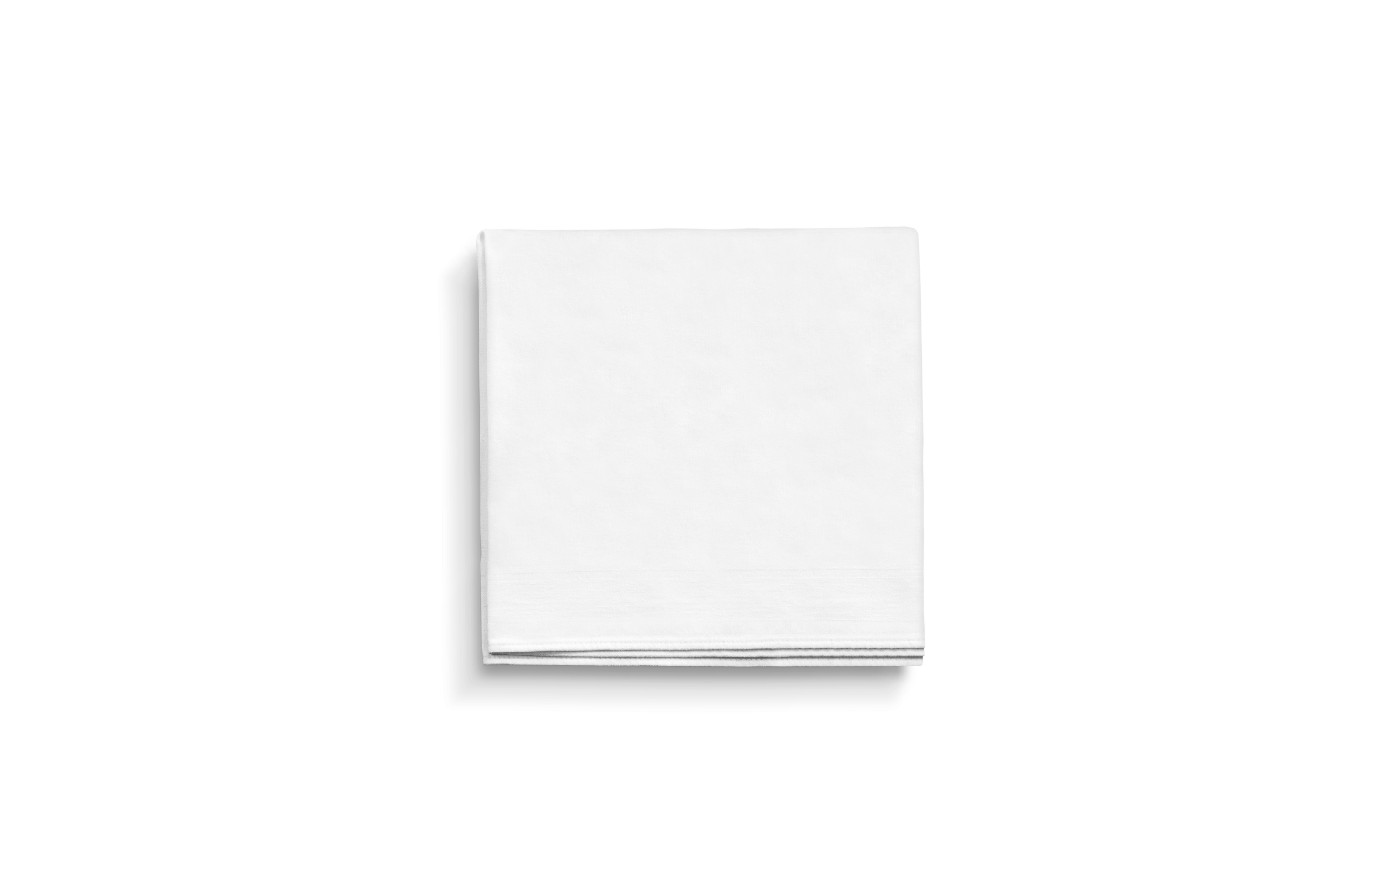 A white handkerchief on a white background